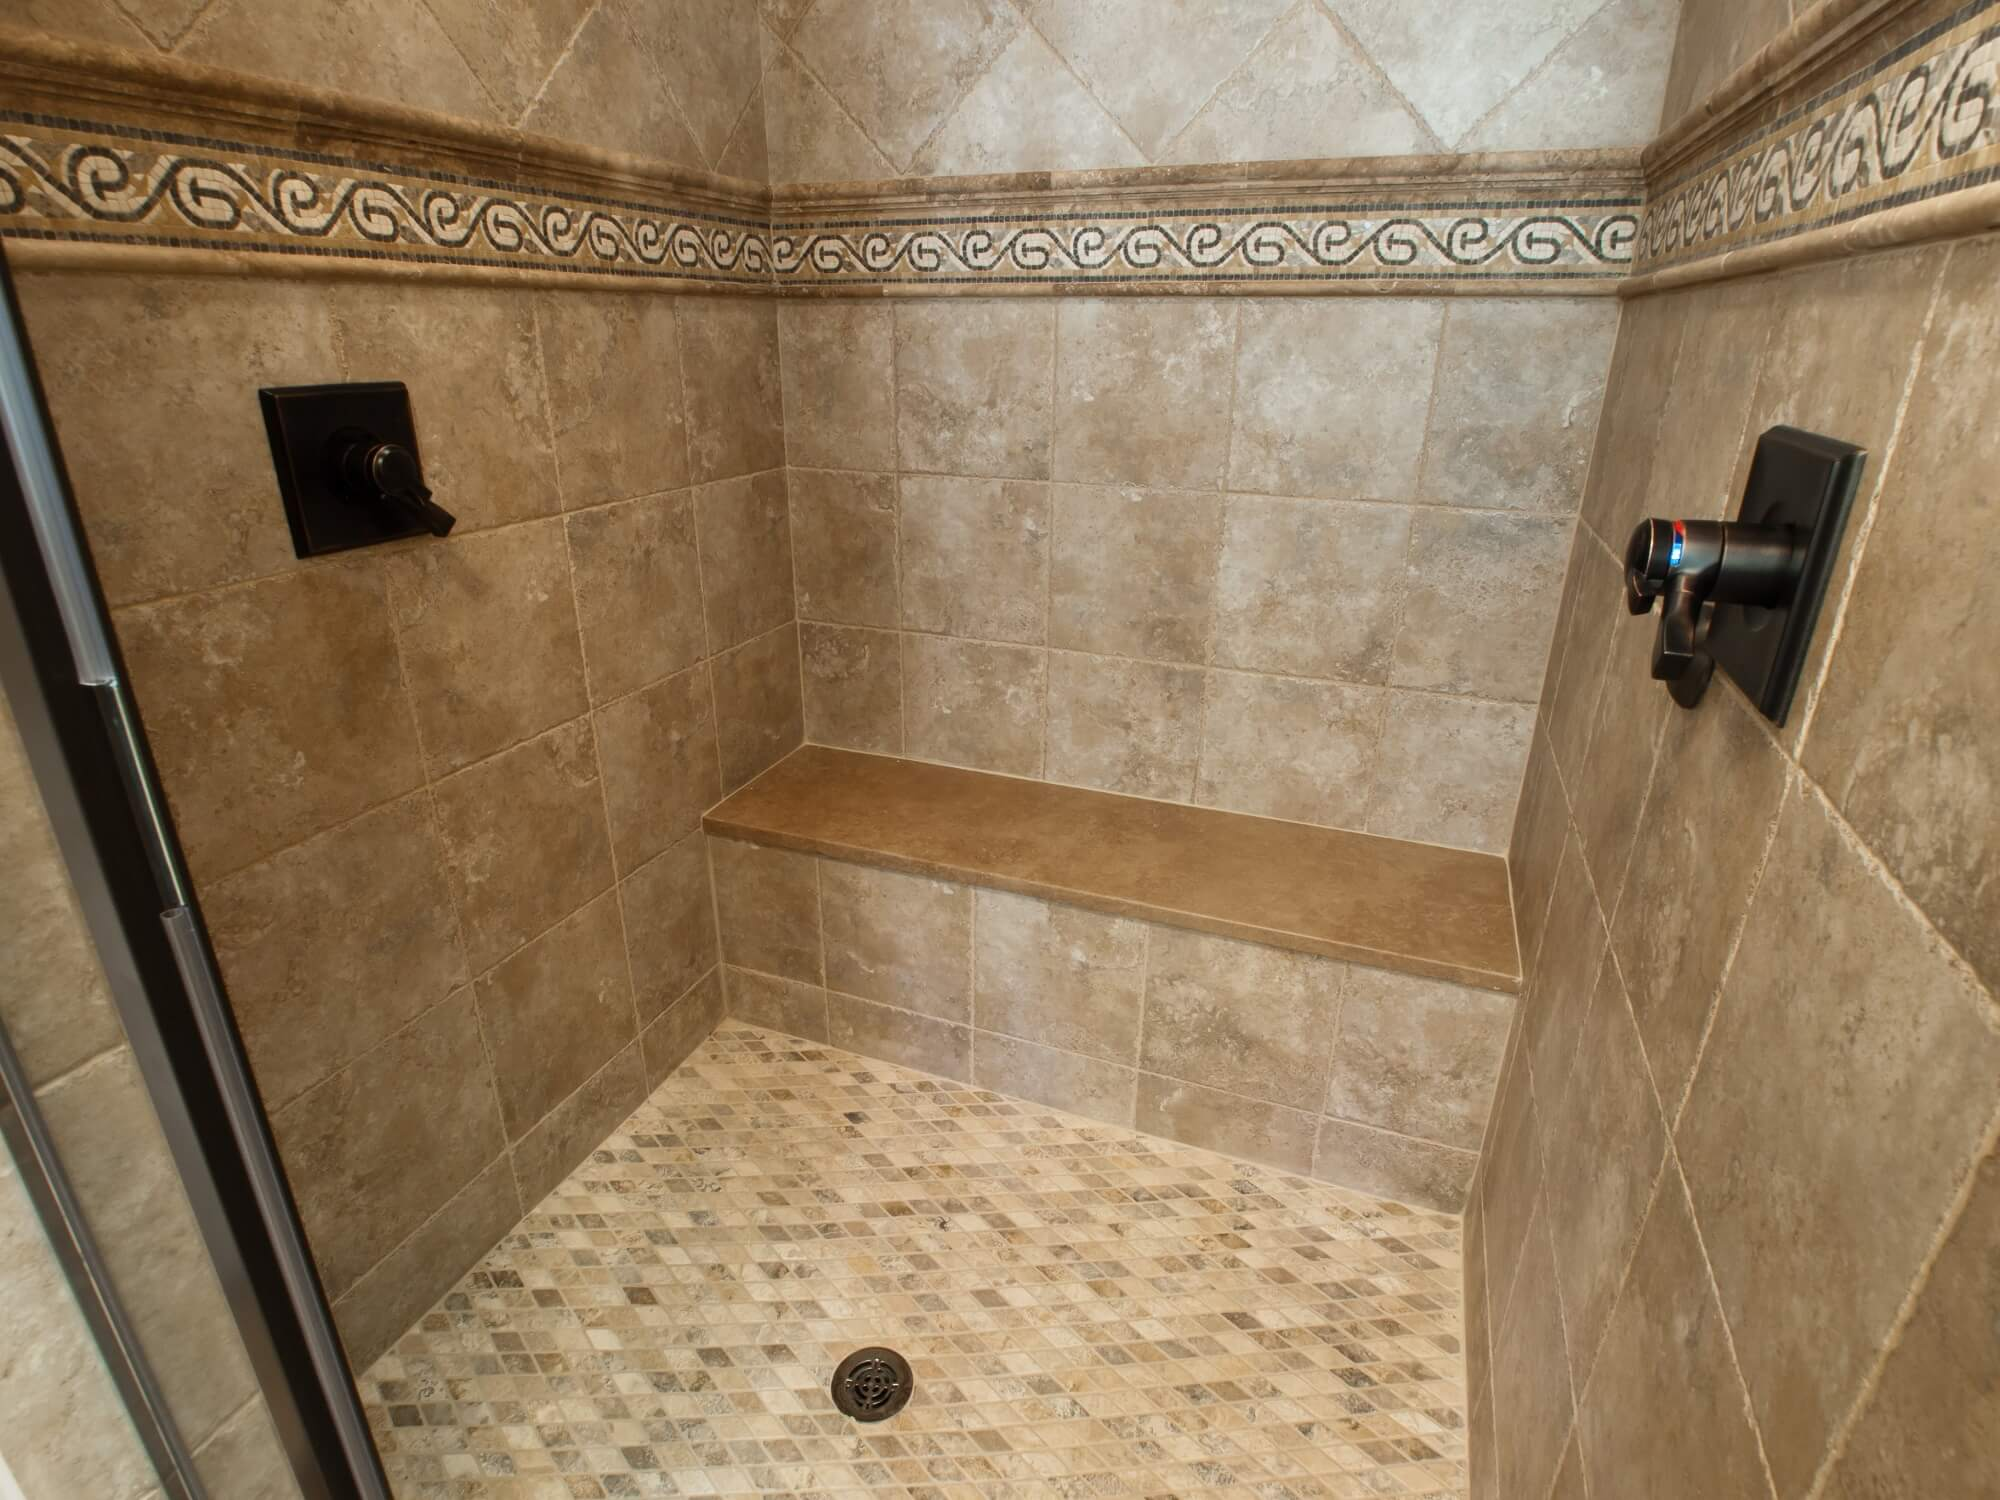 Travertine Shower Care Cleaning Maintenance Tips Builddirectlearning Center